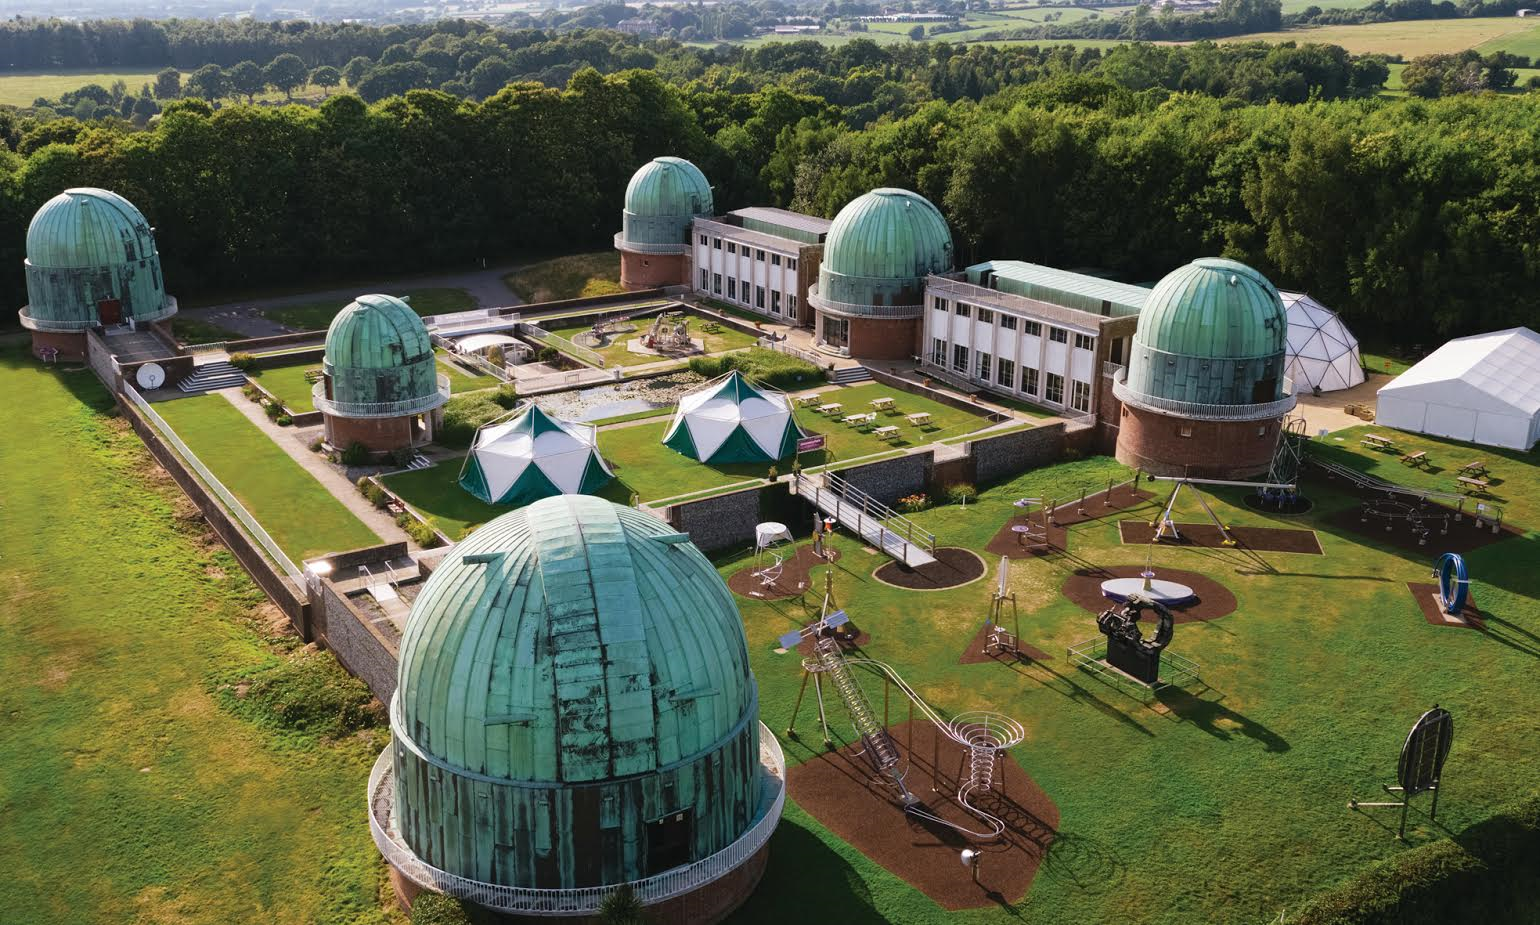 The Observatory Science Centre 2